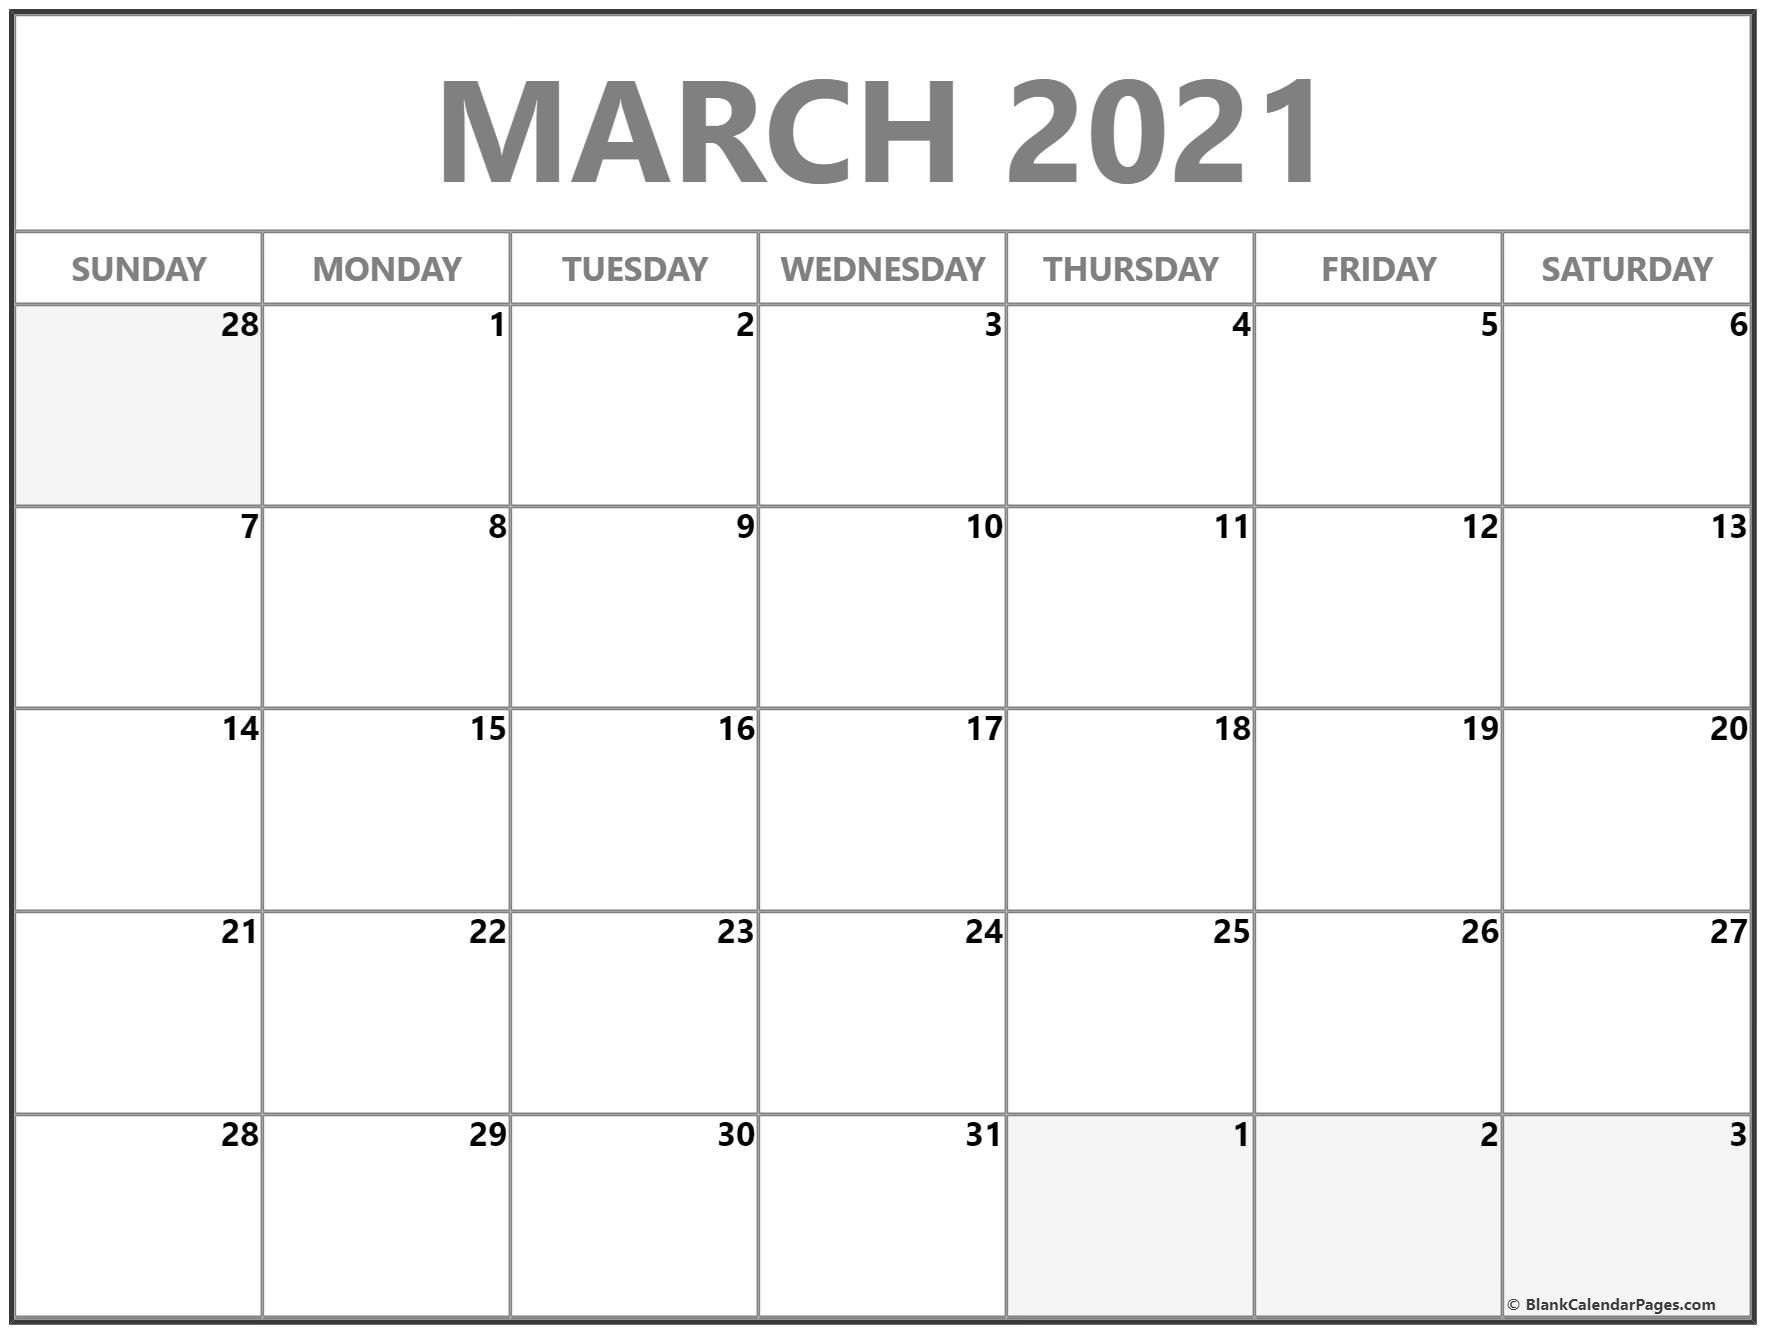 March 2021 Blank Calendar Collection.